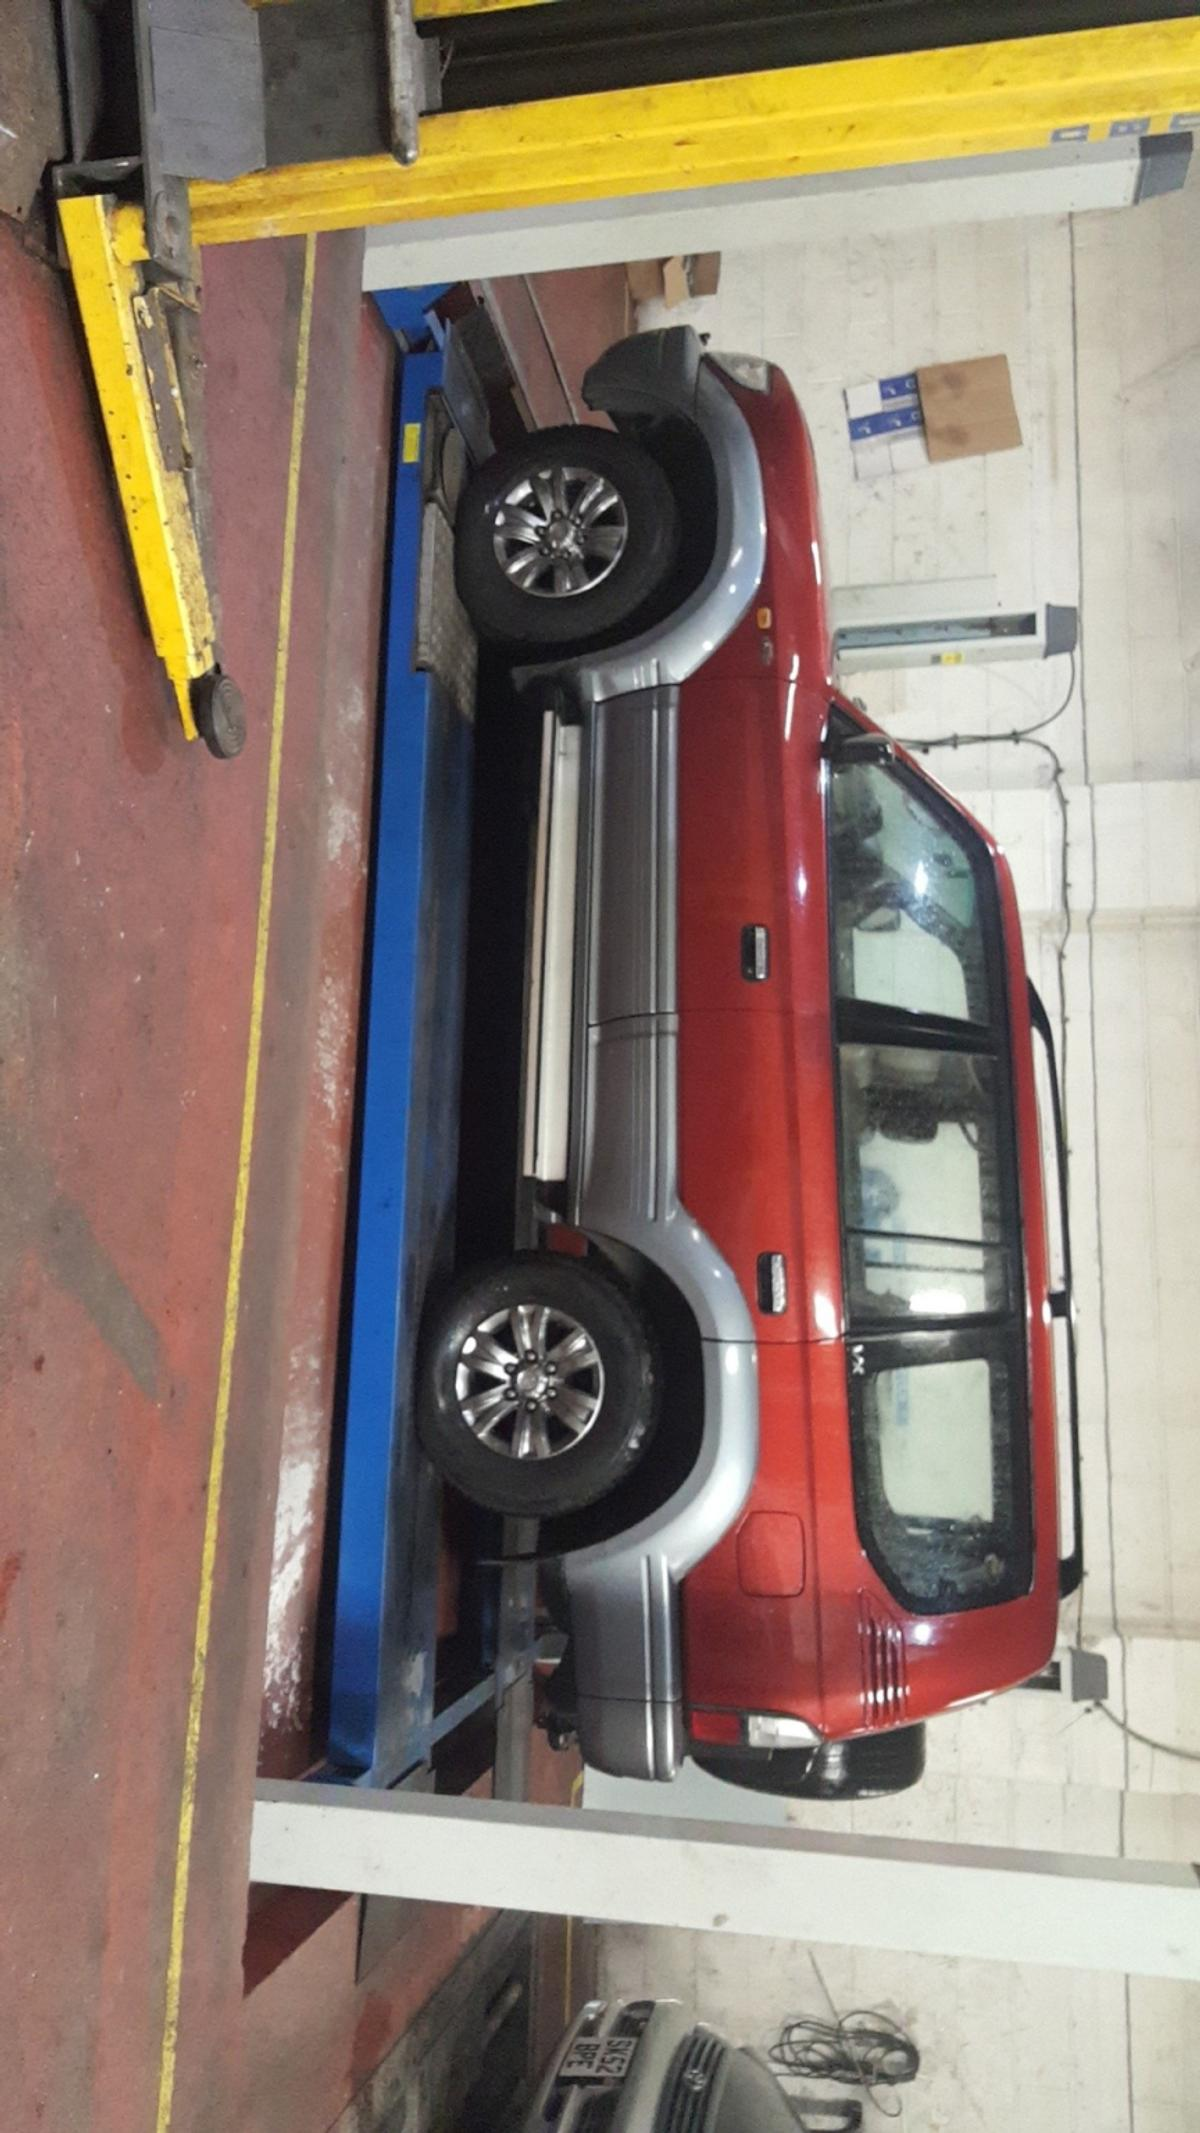 Toyota Colorado in OL12 Rochdale for £3,700 00 for sale - Shpock